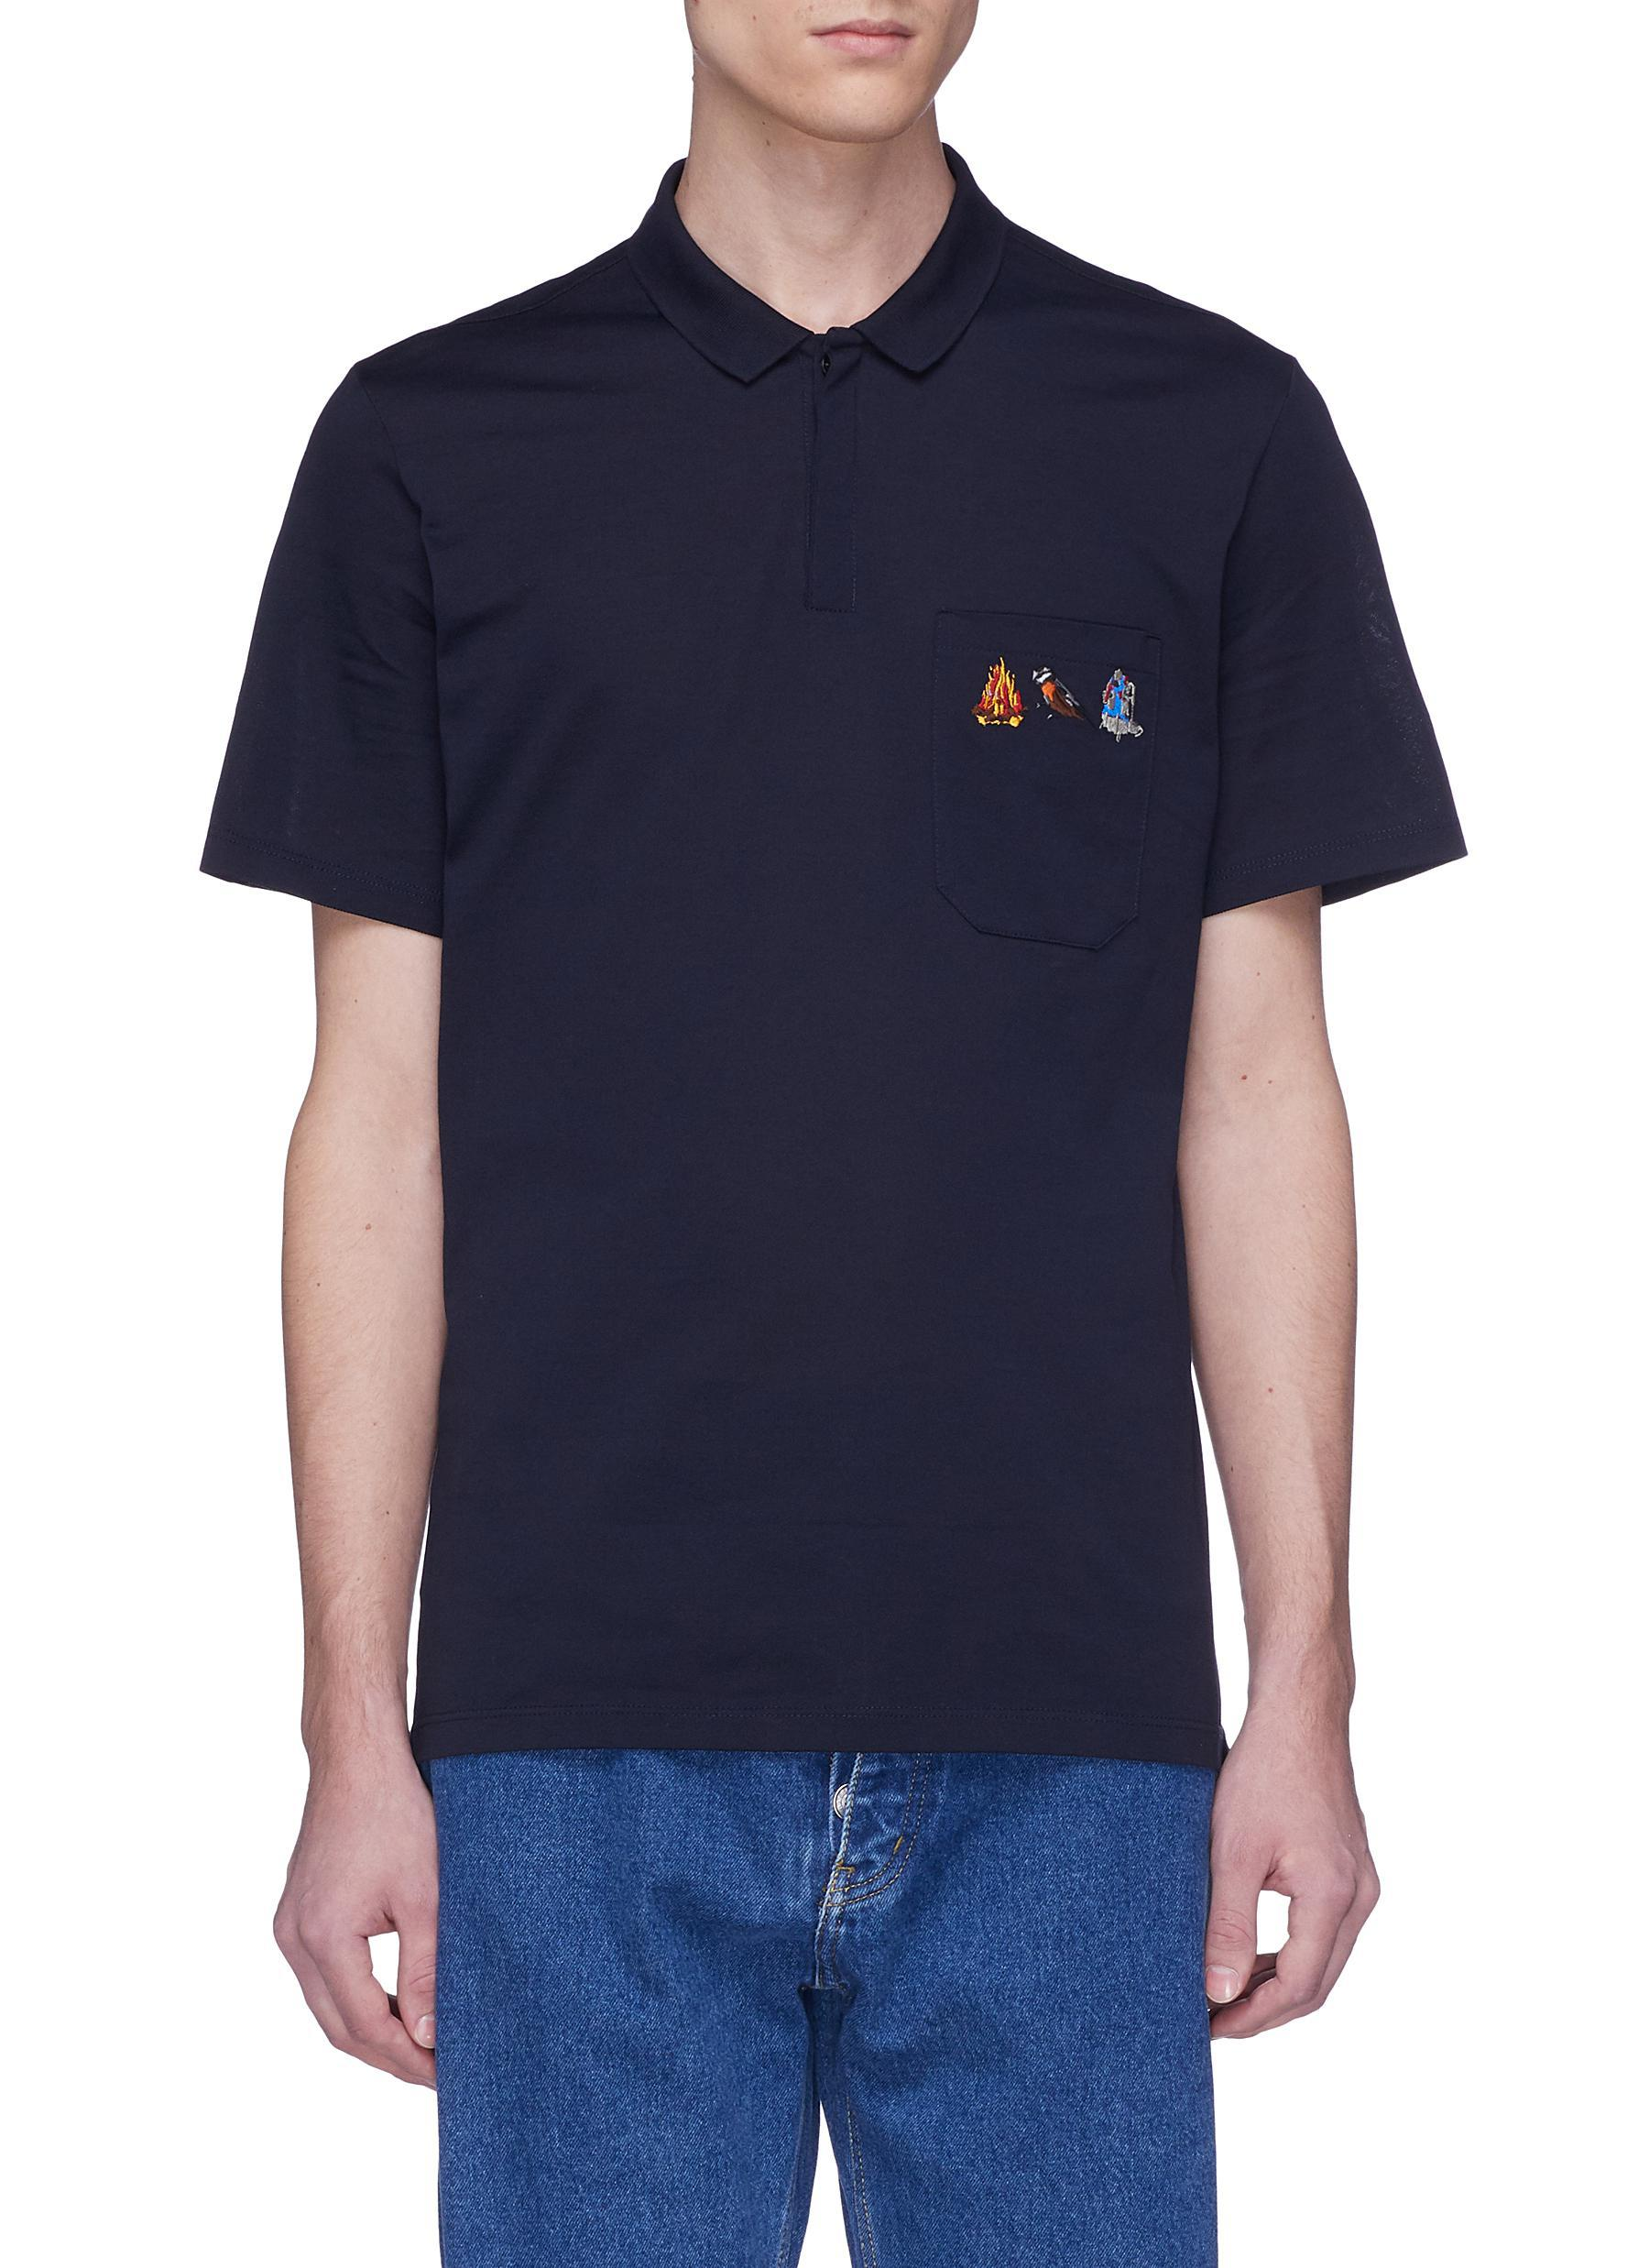 7f0ba7948 Lanvin Mix Graphic Embroidered Polo Shirt in Blue for Men - Lyst